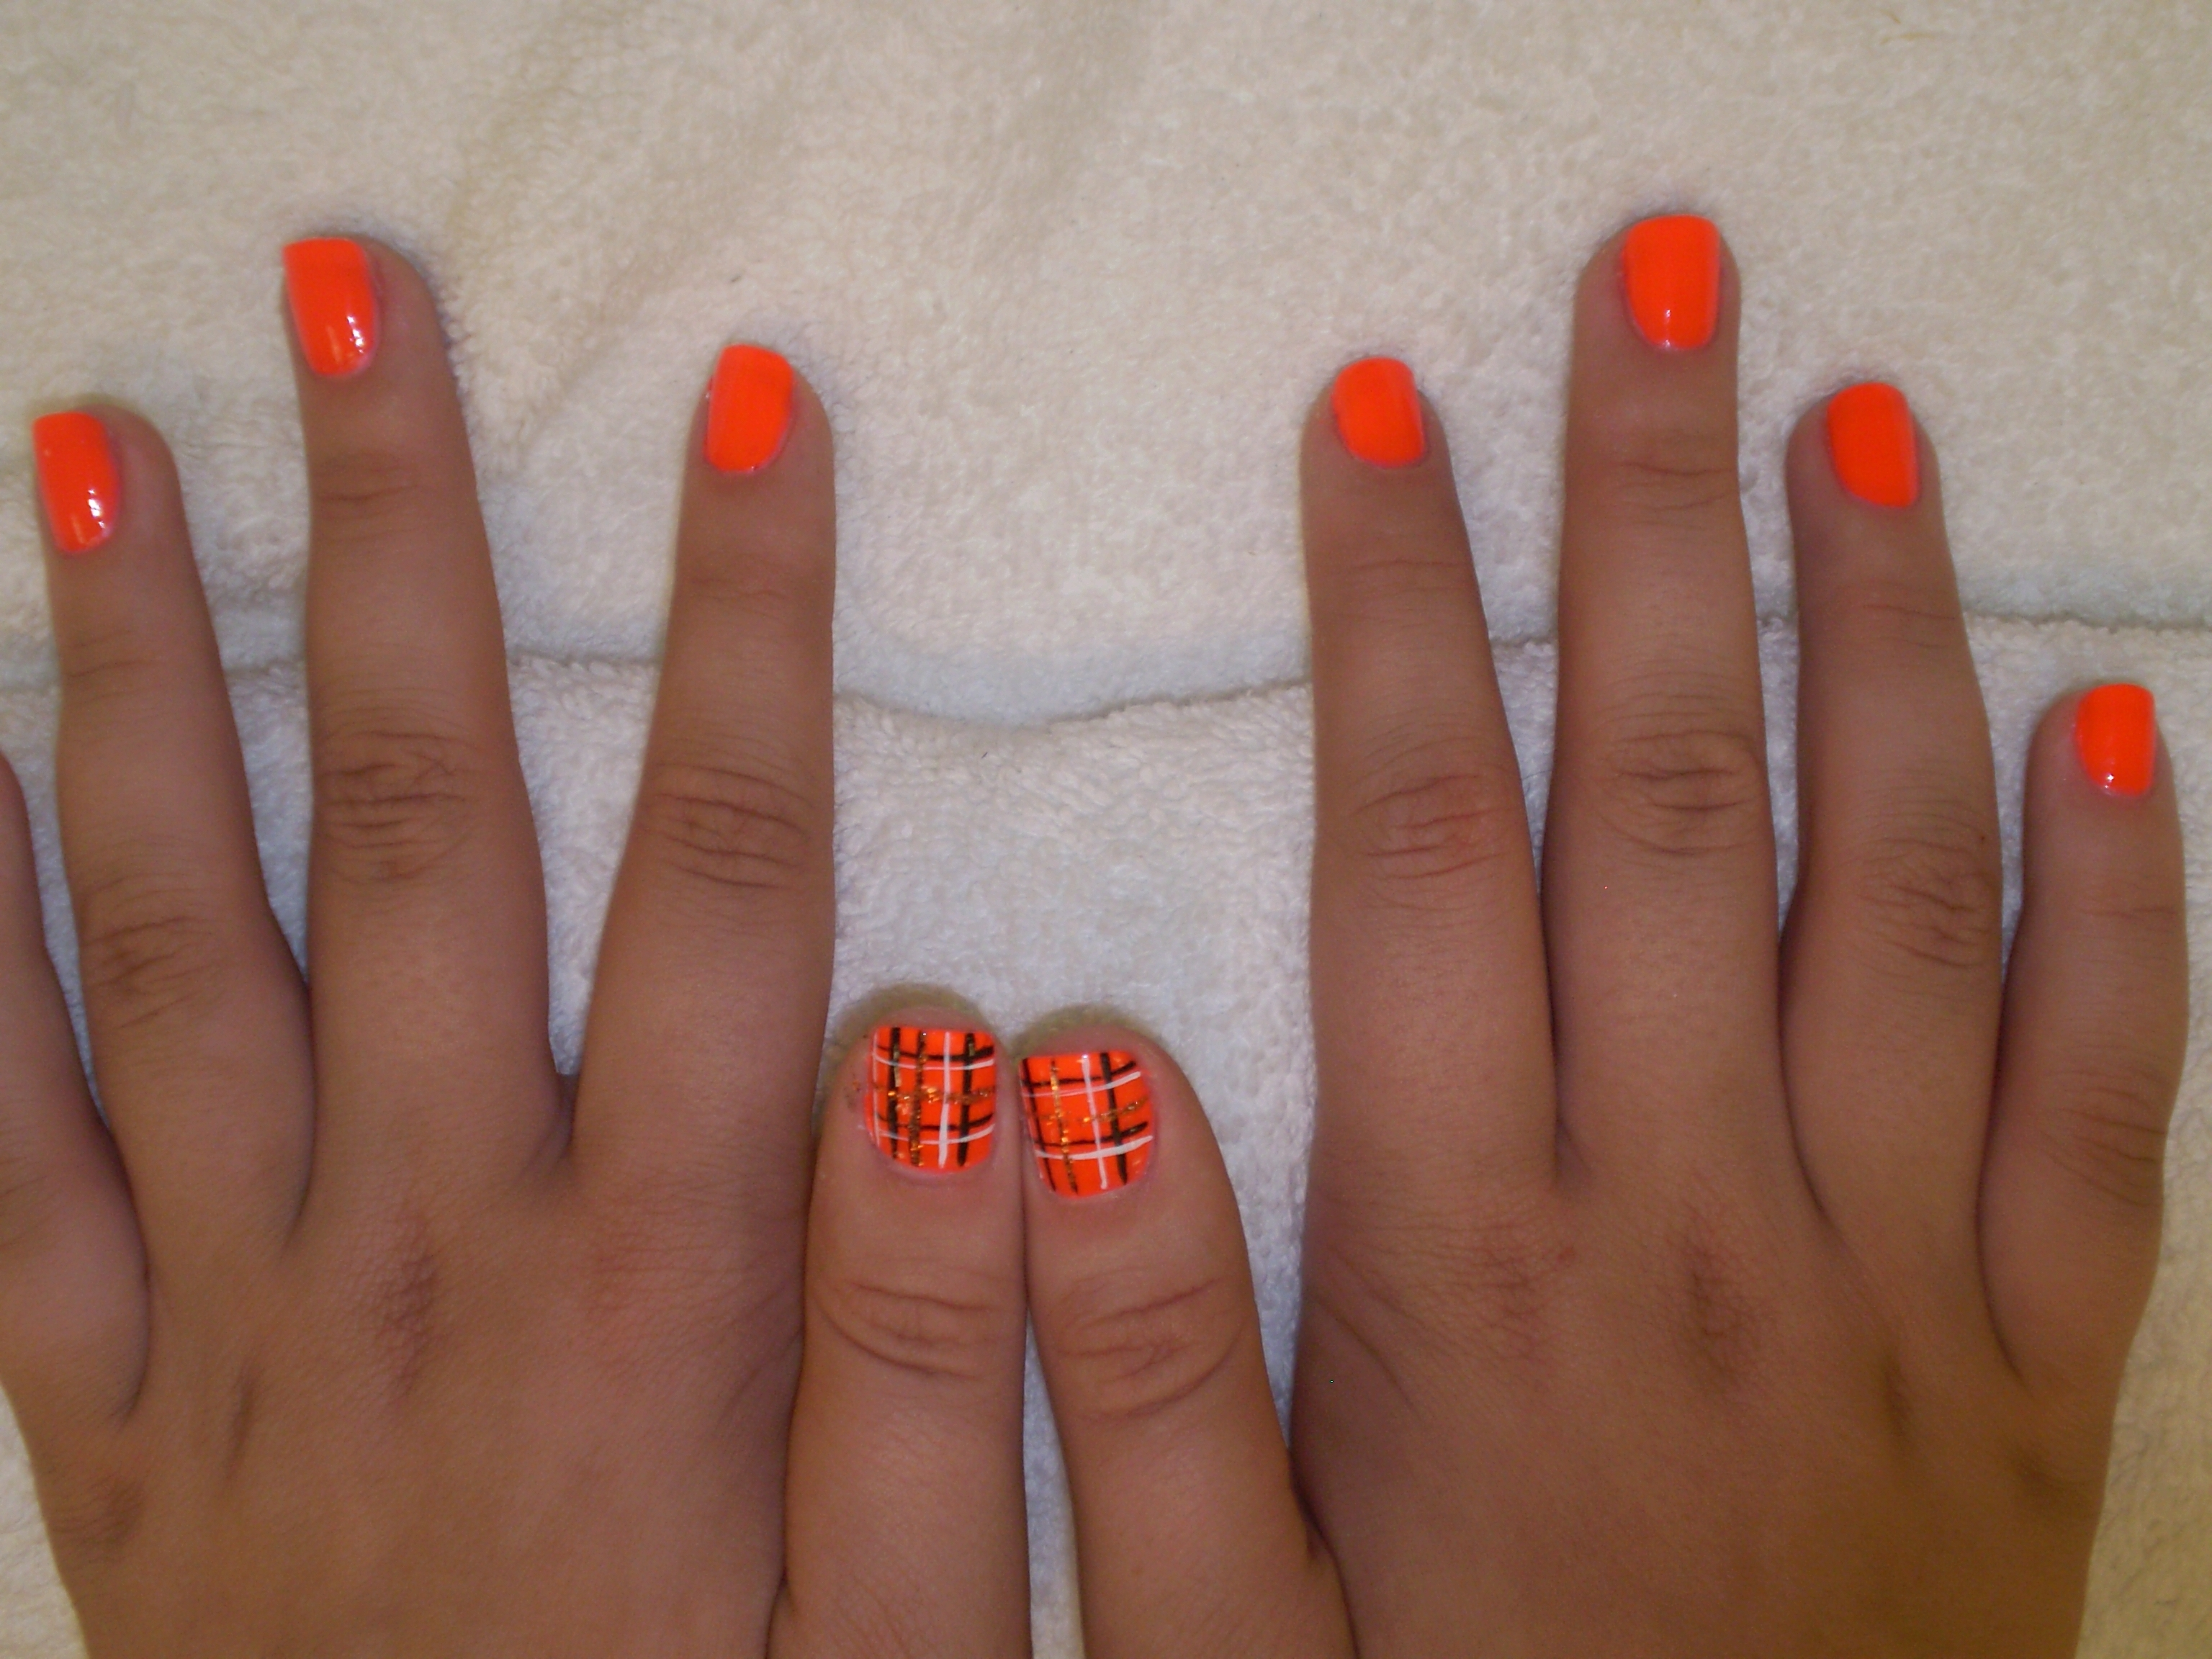 Peridot Nail Salon » Blog Archive » Fun nail colors for summer!